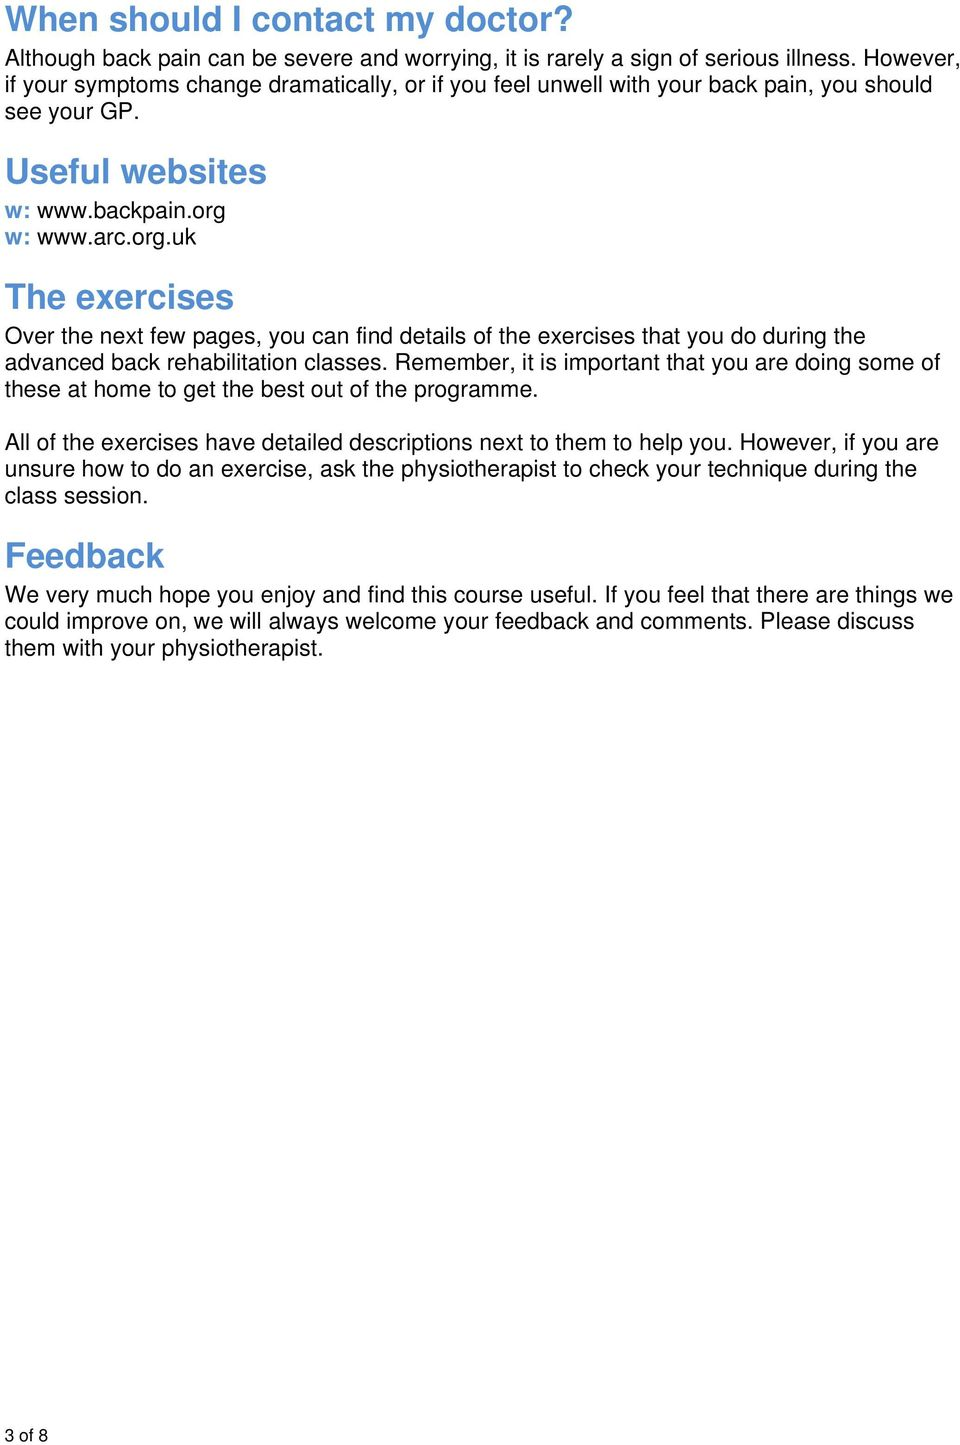 w: www.arc.org.uk The exercises Over the next few pages, you can find details of the exercises that you do during the advanced back rehabilitation classes.